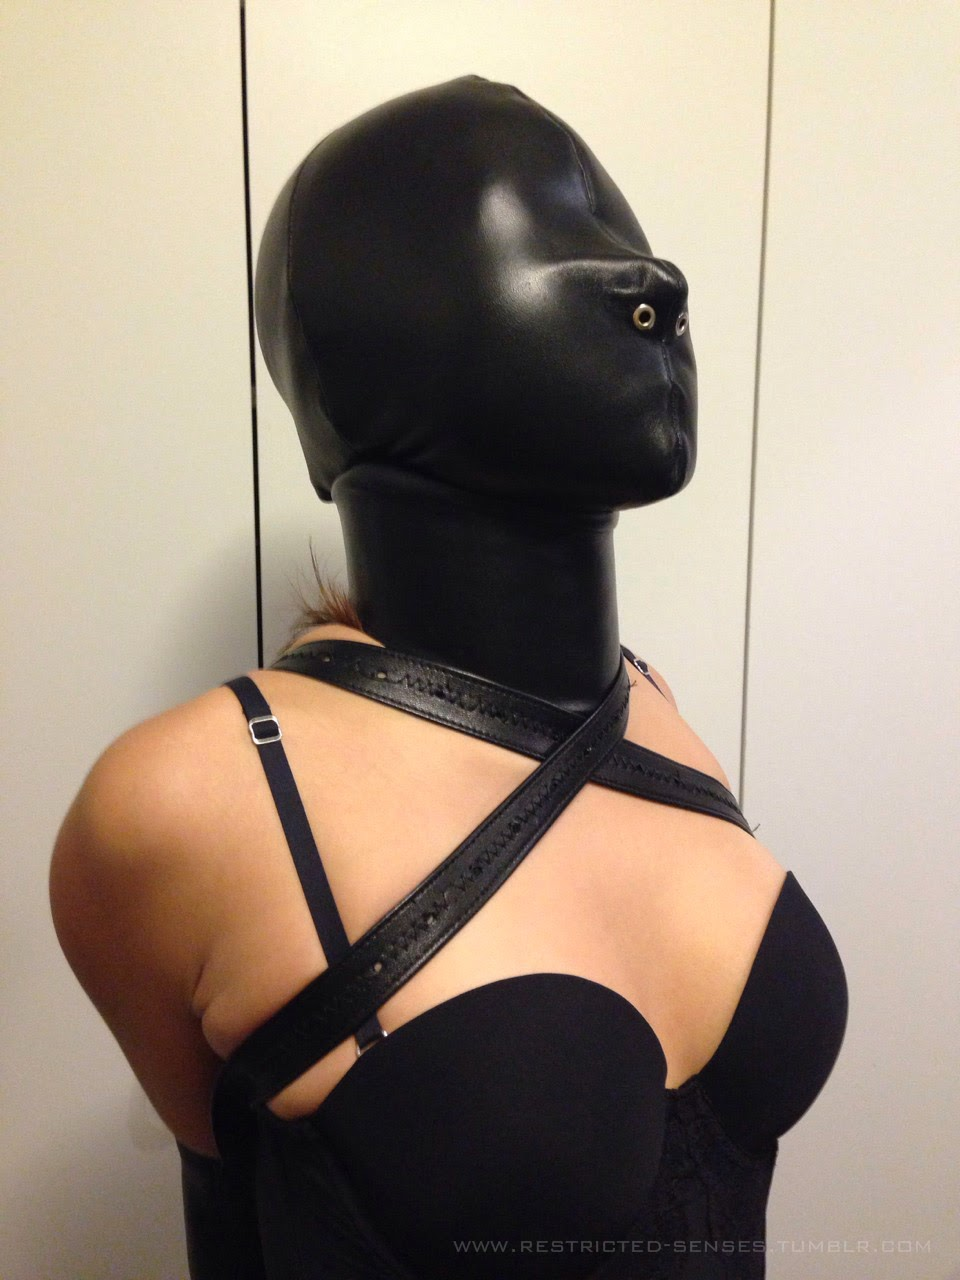 posture collar bondage and chastity